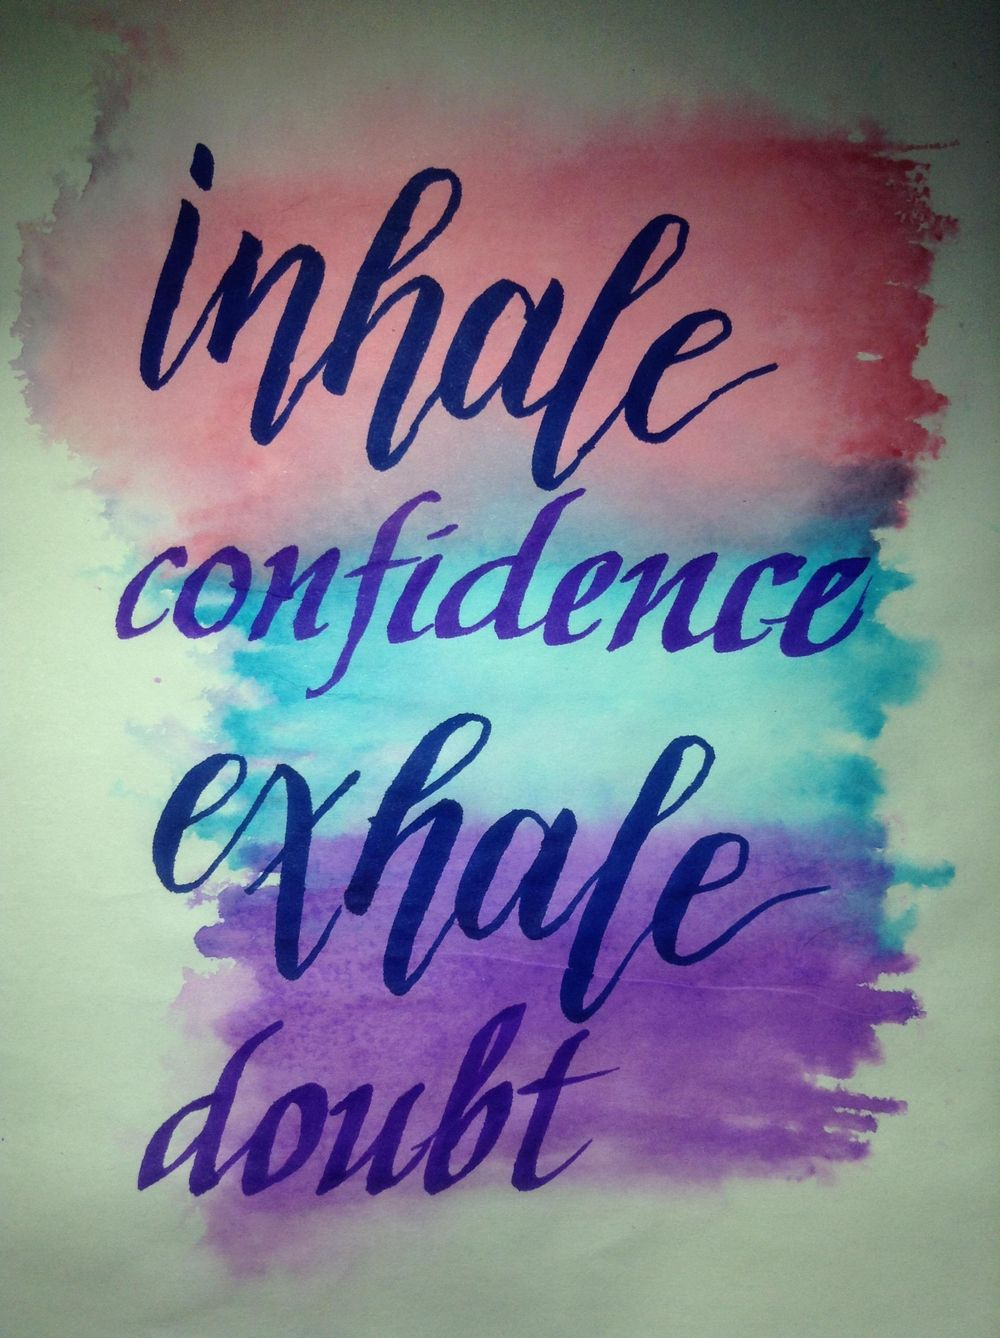 Inhale confidence exhale doubt - image 1 - student project